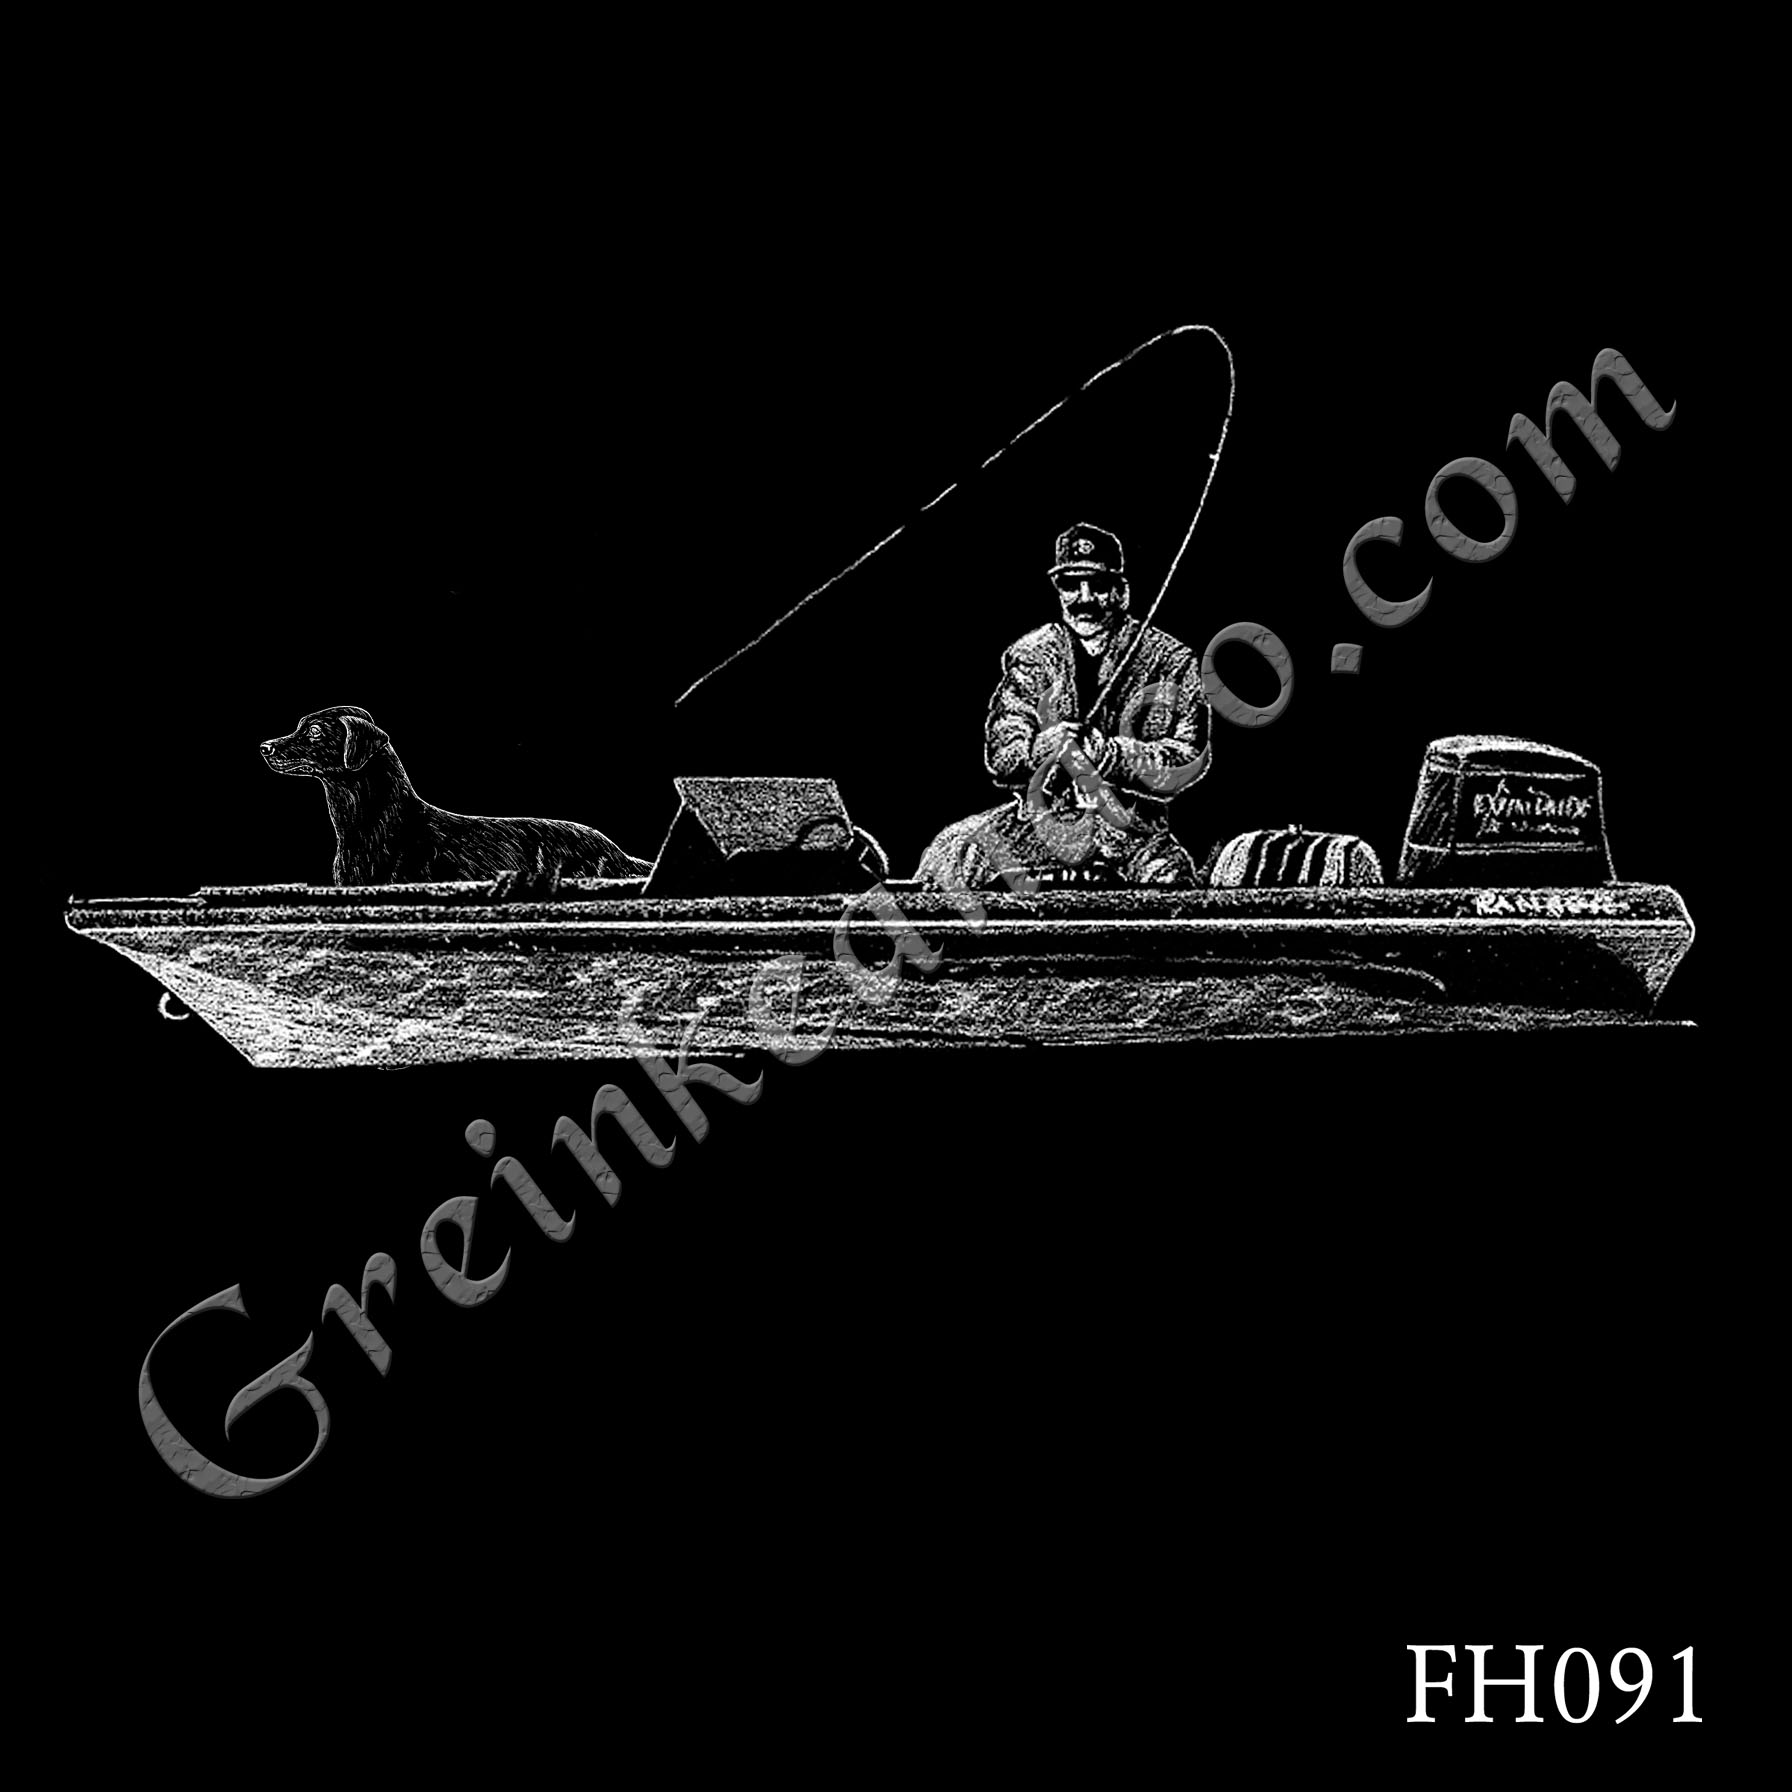 FH091 - Fisherman Boat Dog